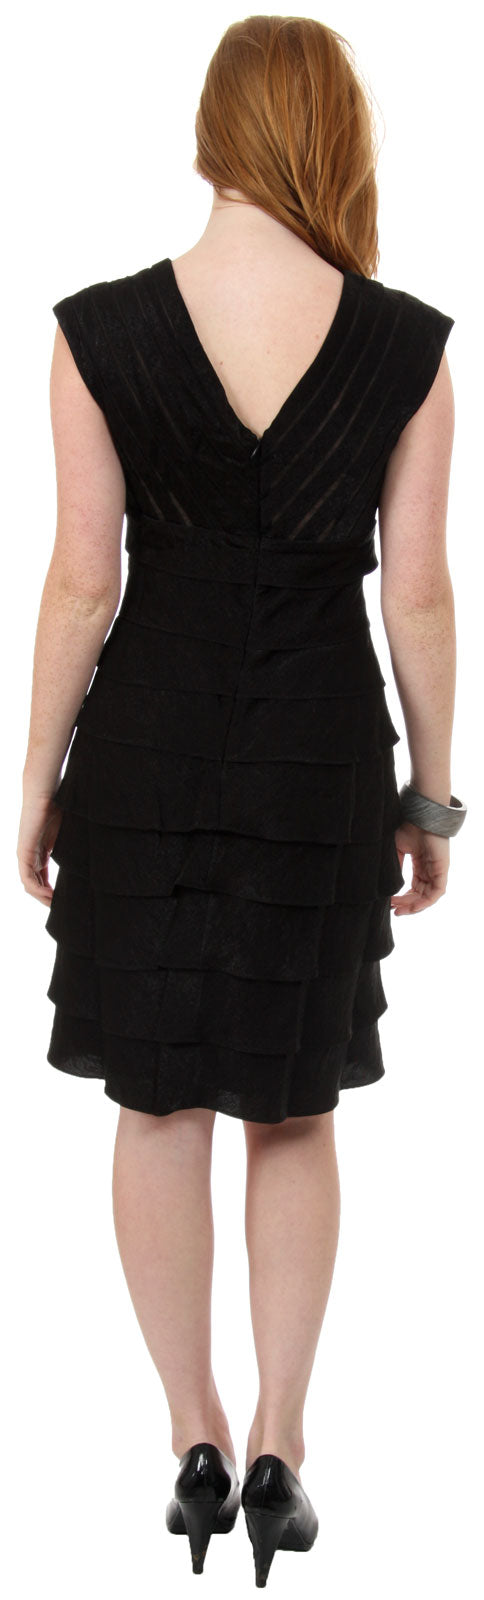 Image of Aqua Inspired Cocktail Dress With Cascading Ruffles back in Black